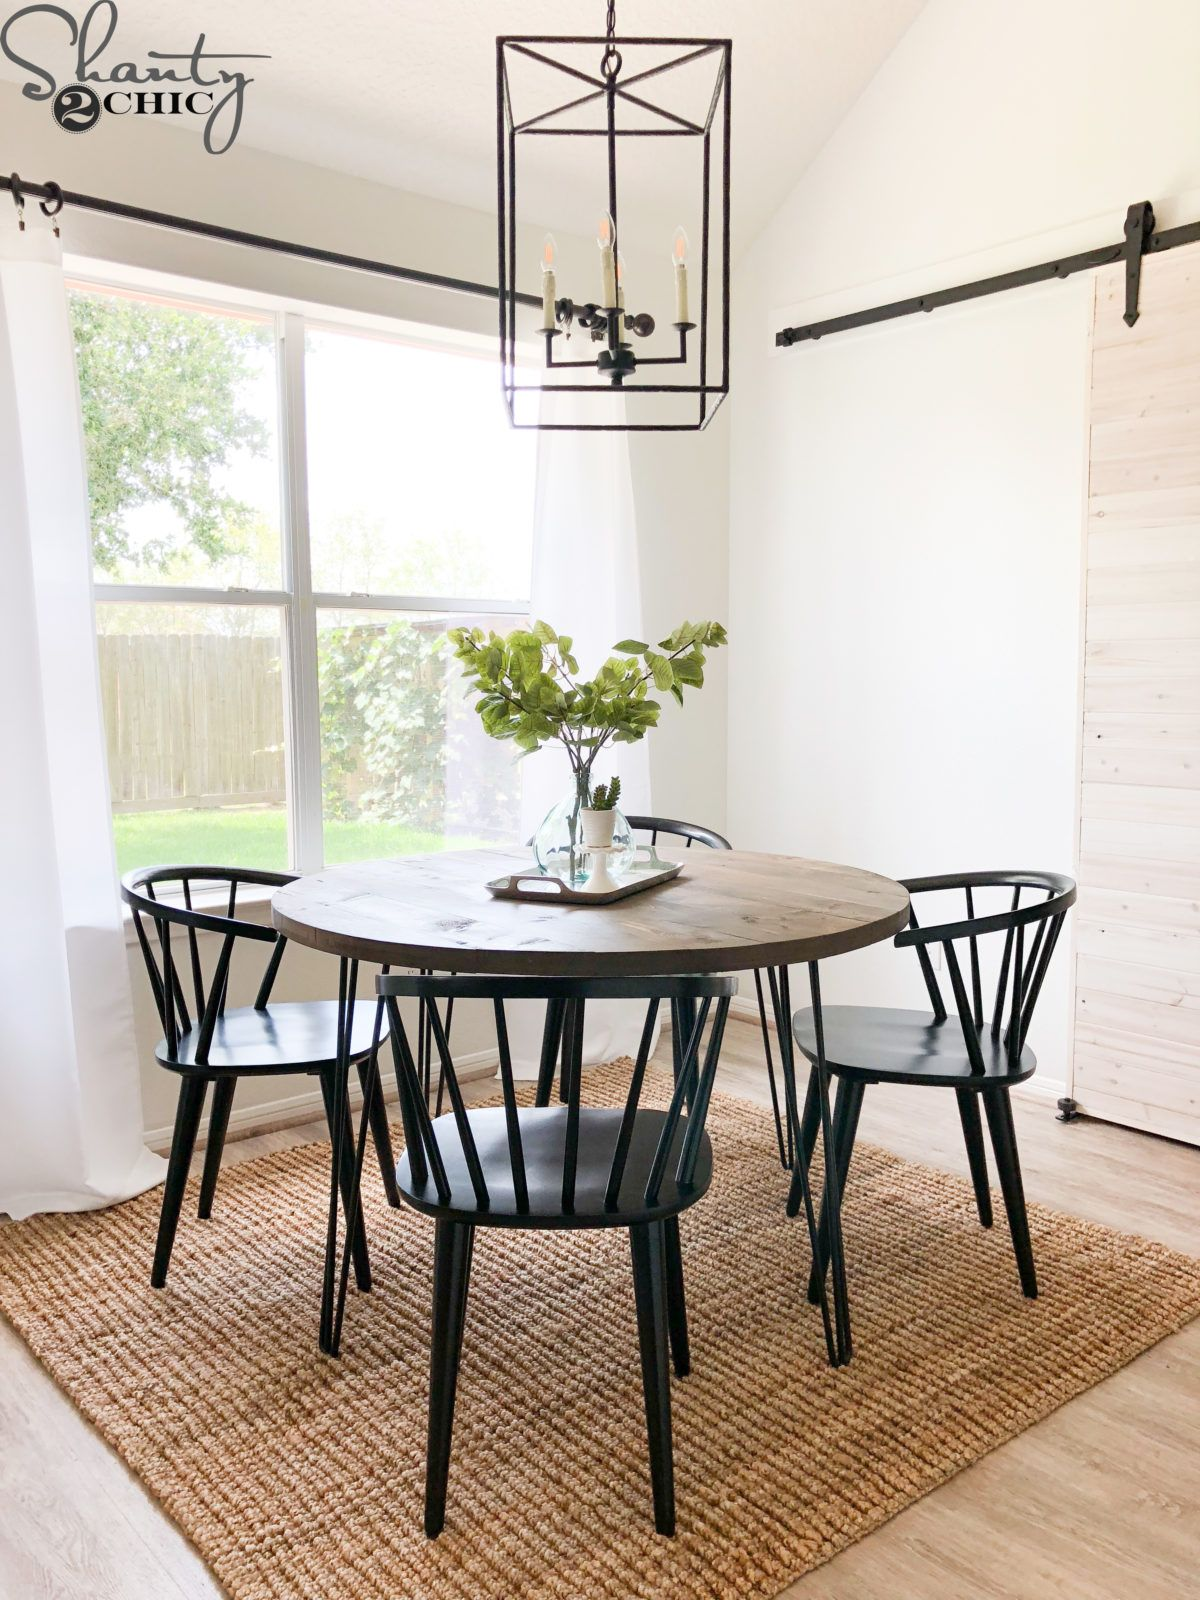 Diy Round Hairpin Table Hairpin Dining Table Round Kitchen